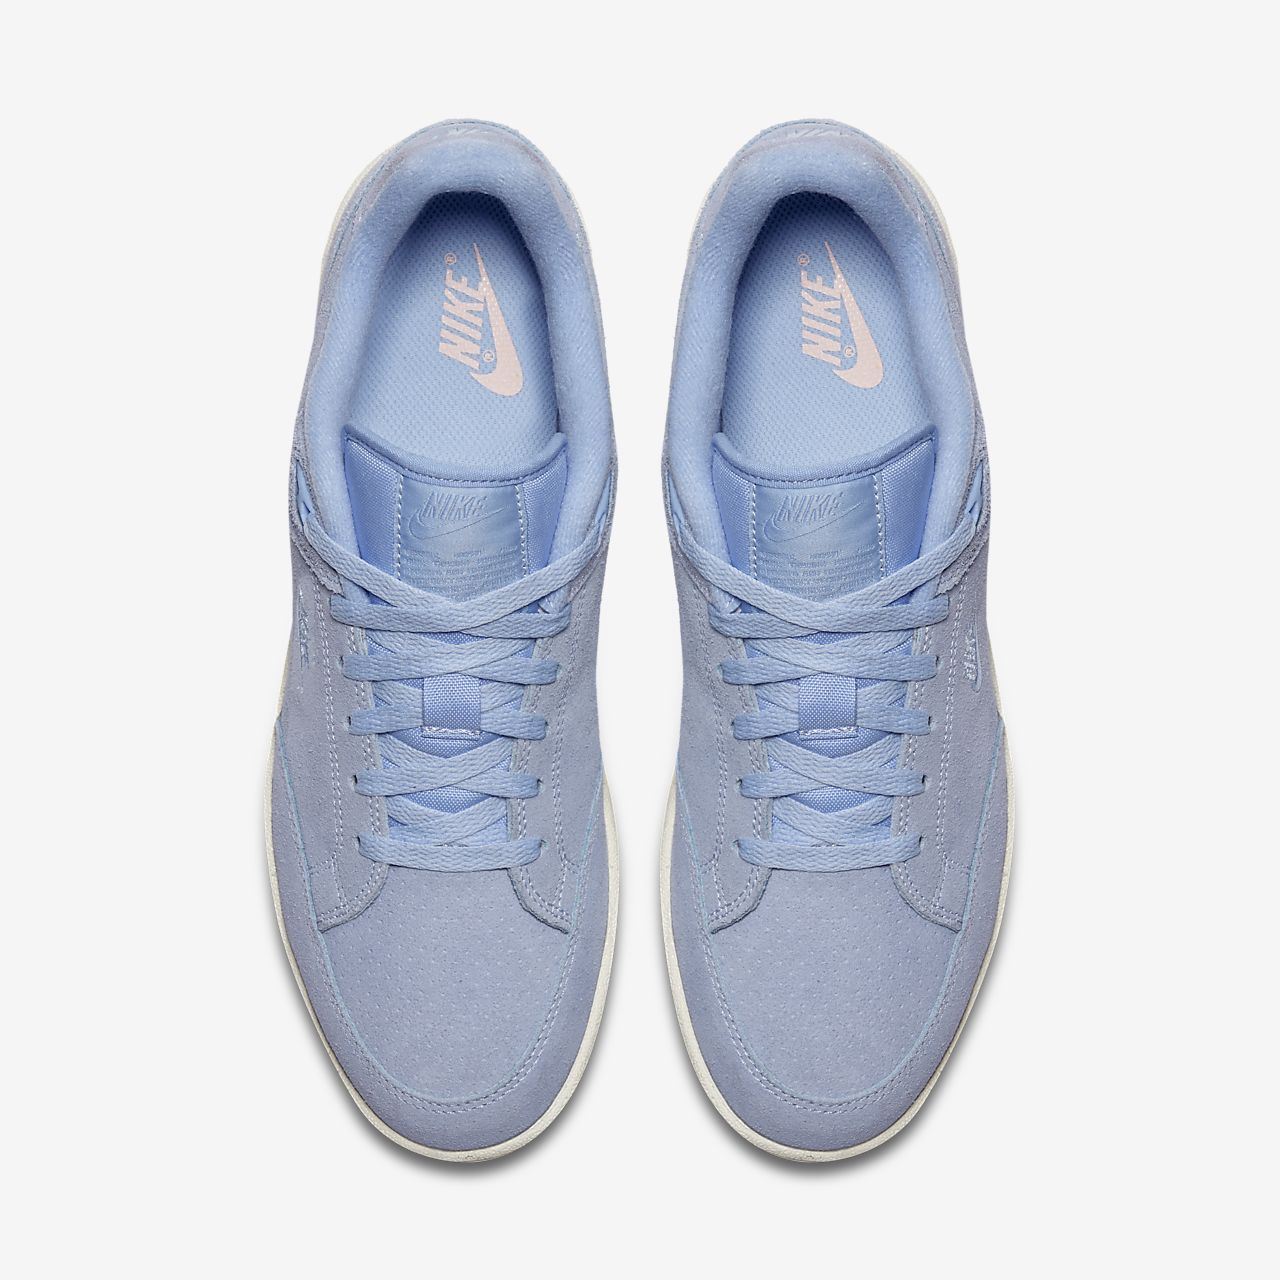 size 40 a2cc1 47117 Chaussure Nike Grandstand II Suede pour Homme. Nike.com CH